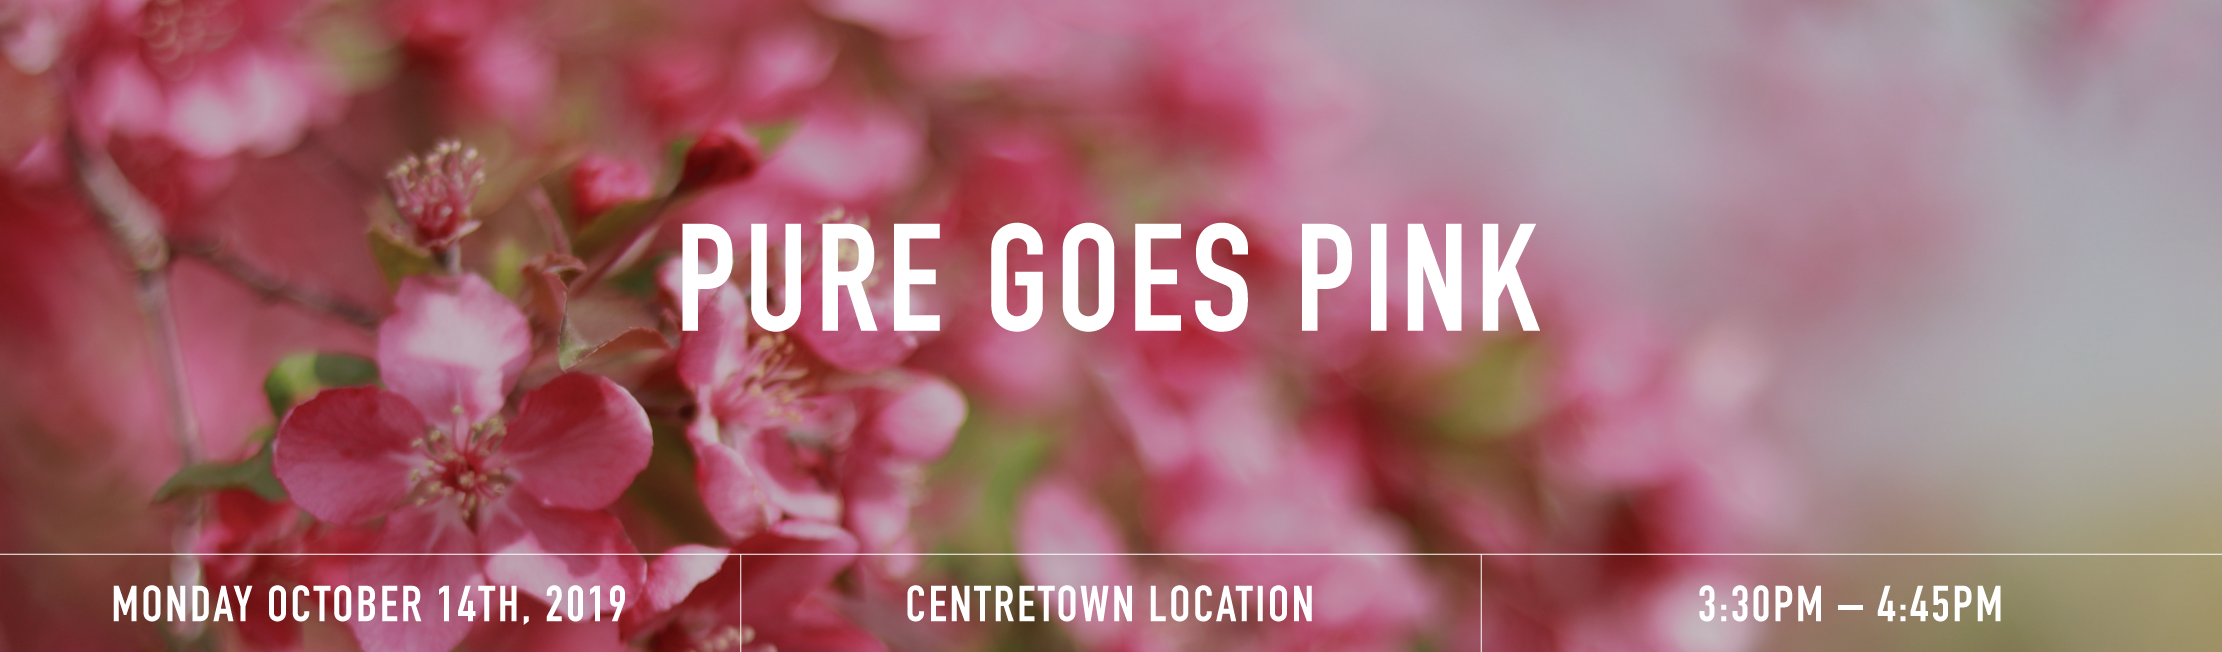 Pure goes pink banner  1